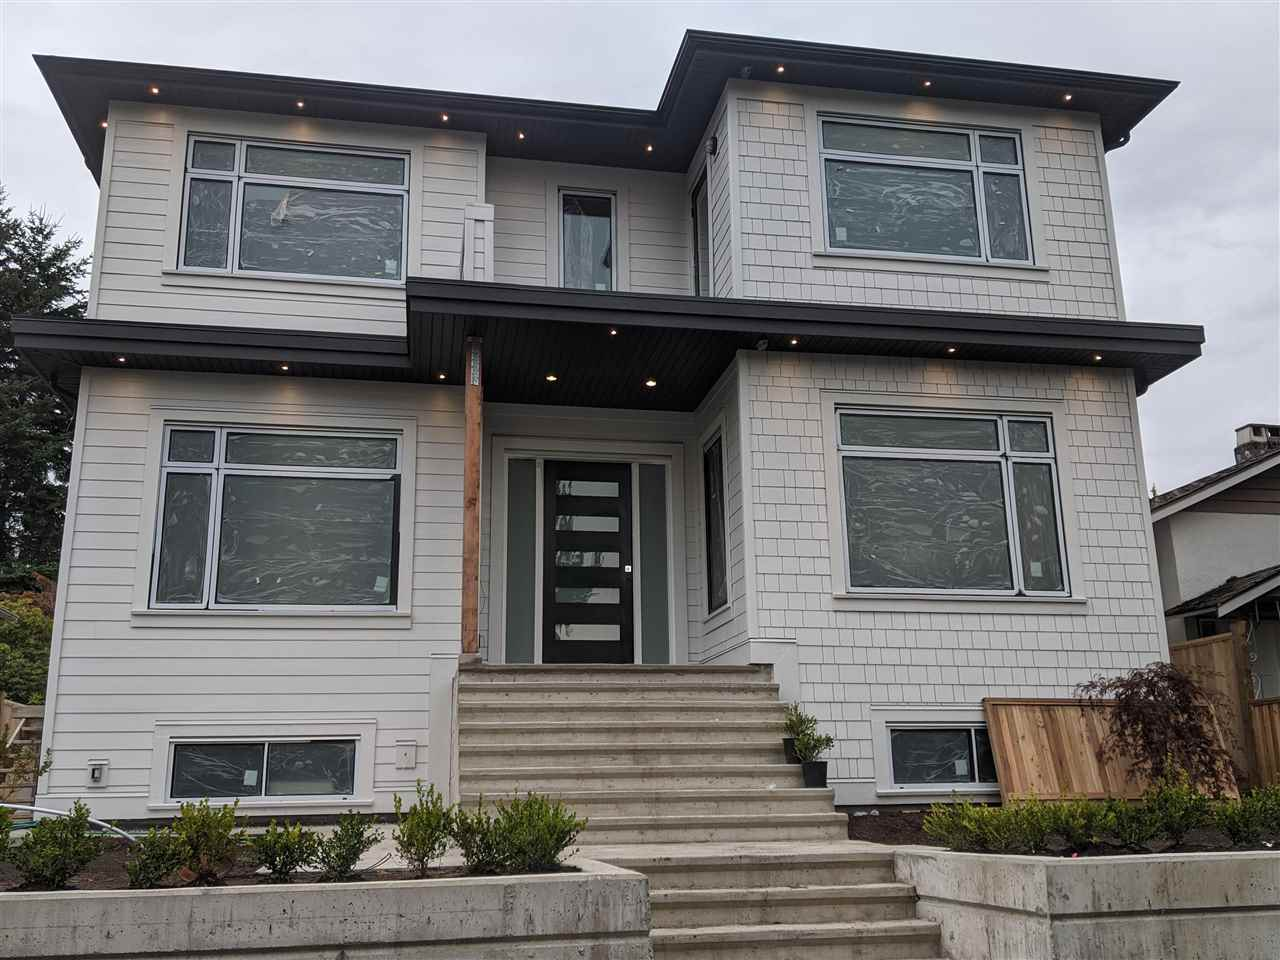 236 W 27TH STREET - Upper Lonsdale House/Single Family for sale, 7 Bedrooms (R2481079)